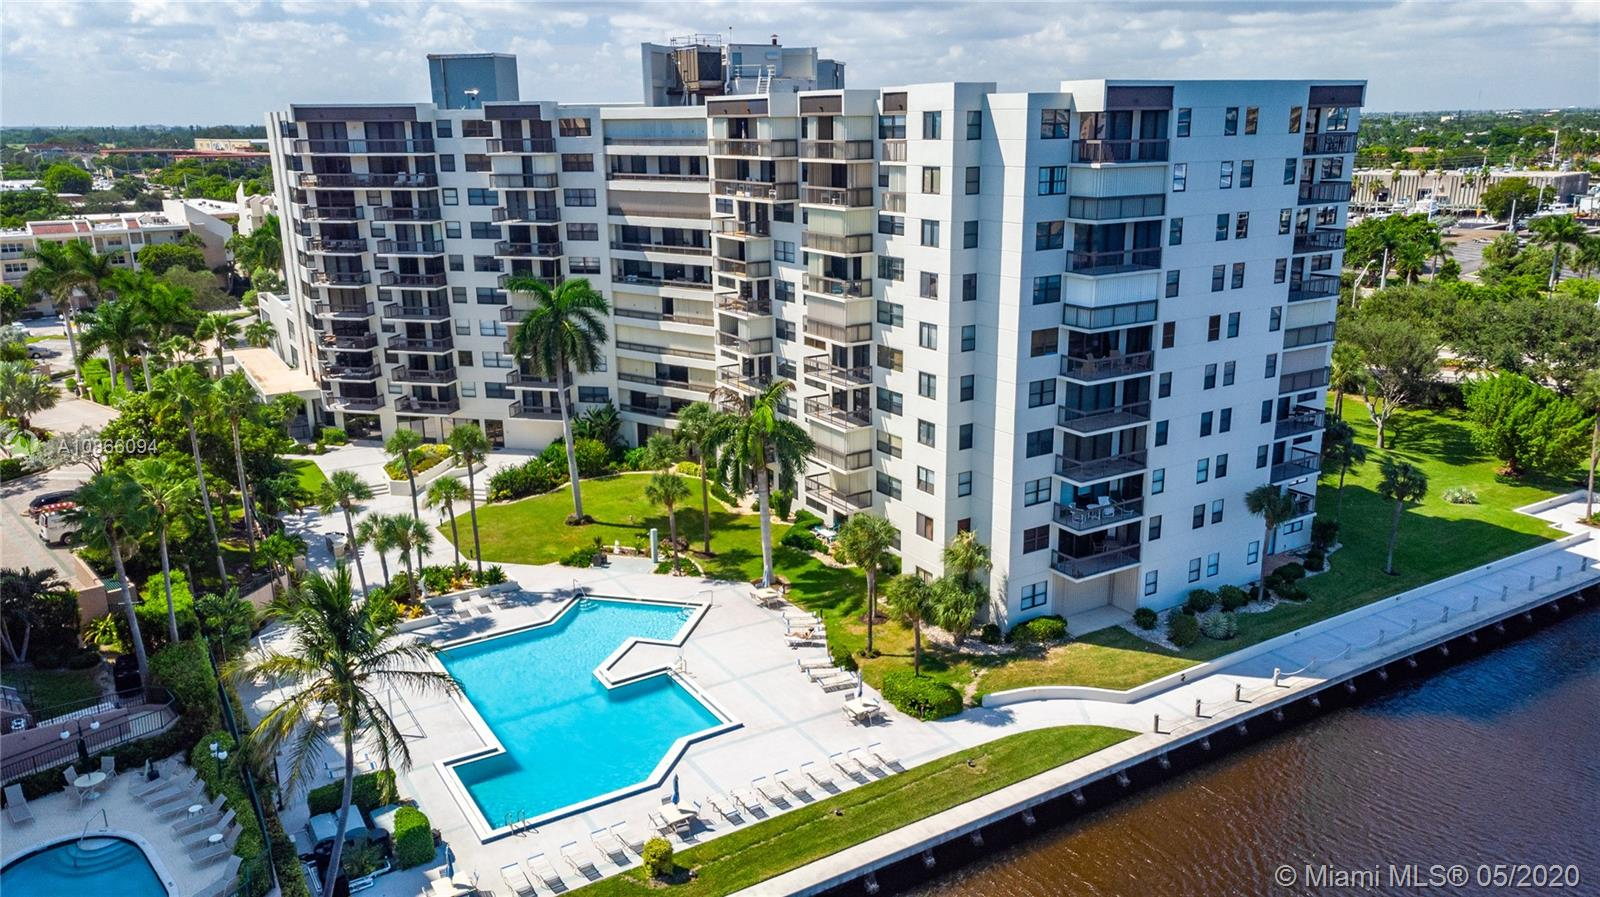 INTRACOASTAL VIEW AND TREES, TREES, TREES! THIS UNIT IS THE LARGEST MODEL WITH A 30 FT BALCONY. COMPLETELY RENOVATED WITH SPLIT FLOOR PLAN, IMPACT WINDOWS, AND VIEWS FROM EVERY ROOM! TOP QUALITY FLOORS THOUGH OUT! A/C AND WATER HEATER UNDER 5 YR. FEW HAVE LARGE AND ELEGANT EAT-IN OPEN KITCHEN LIKE THIS - CHEFS THIS IS FOR YOU. THE LIVING & DINING AREAS ALLOW FOR MAXIMUM LIGHT. MASTER BEDROOM HAS FURNISHED WALK IN CLOSET WITH BUILT-INS THAT COMPLIMENT A TASTEFULLY RENOVATED EN-SUITE BATHROOM. THE SECOND BEDROOM FEELS LIKE ANOTHER MASTER BEDROOM WITH A SPACIOUS BATHROOM. LAUNDRY IN UNIT. AMENITIES: PARTY ROOM, GYM, BILLIARDS, 24 HR SECURITY AND COVERED PARKING. BUILDING HAS BEEN RECENTLY RENOVATED AND KNOWN FOR ITS HIGH-END STYLE. YOU ARE MINUTES TO THE BEACH!